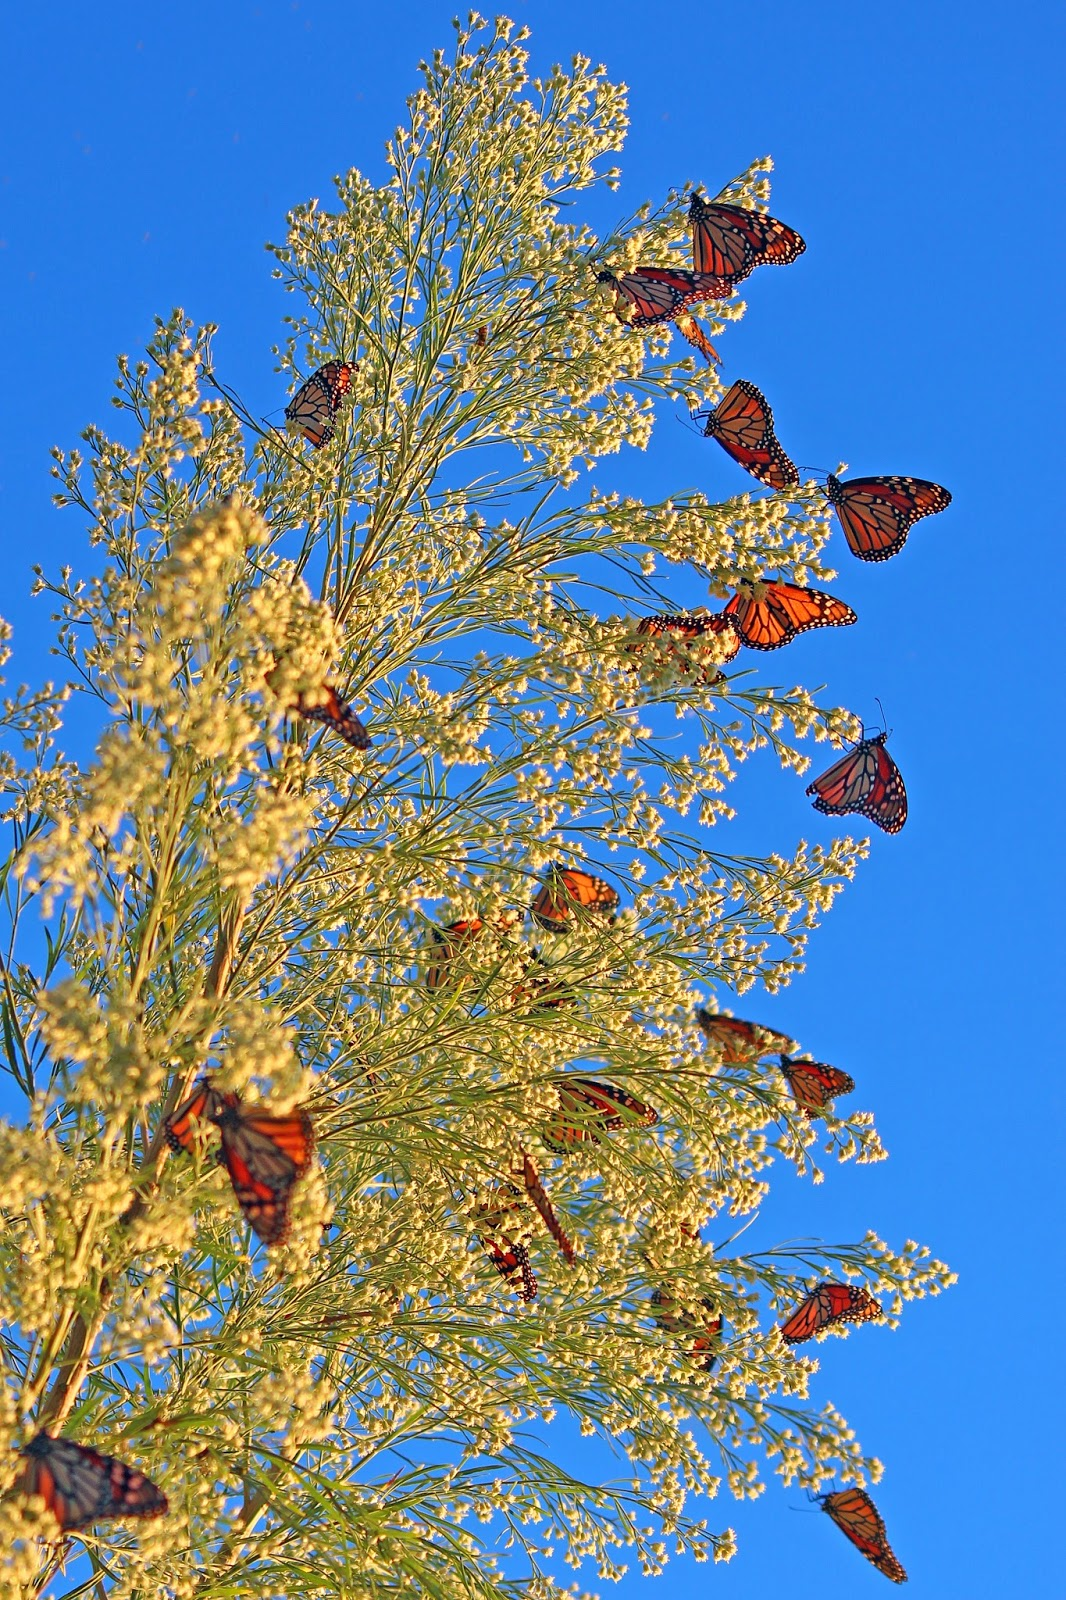 Monarch butterfly migration tree - photo#40